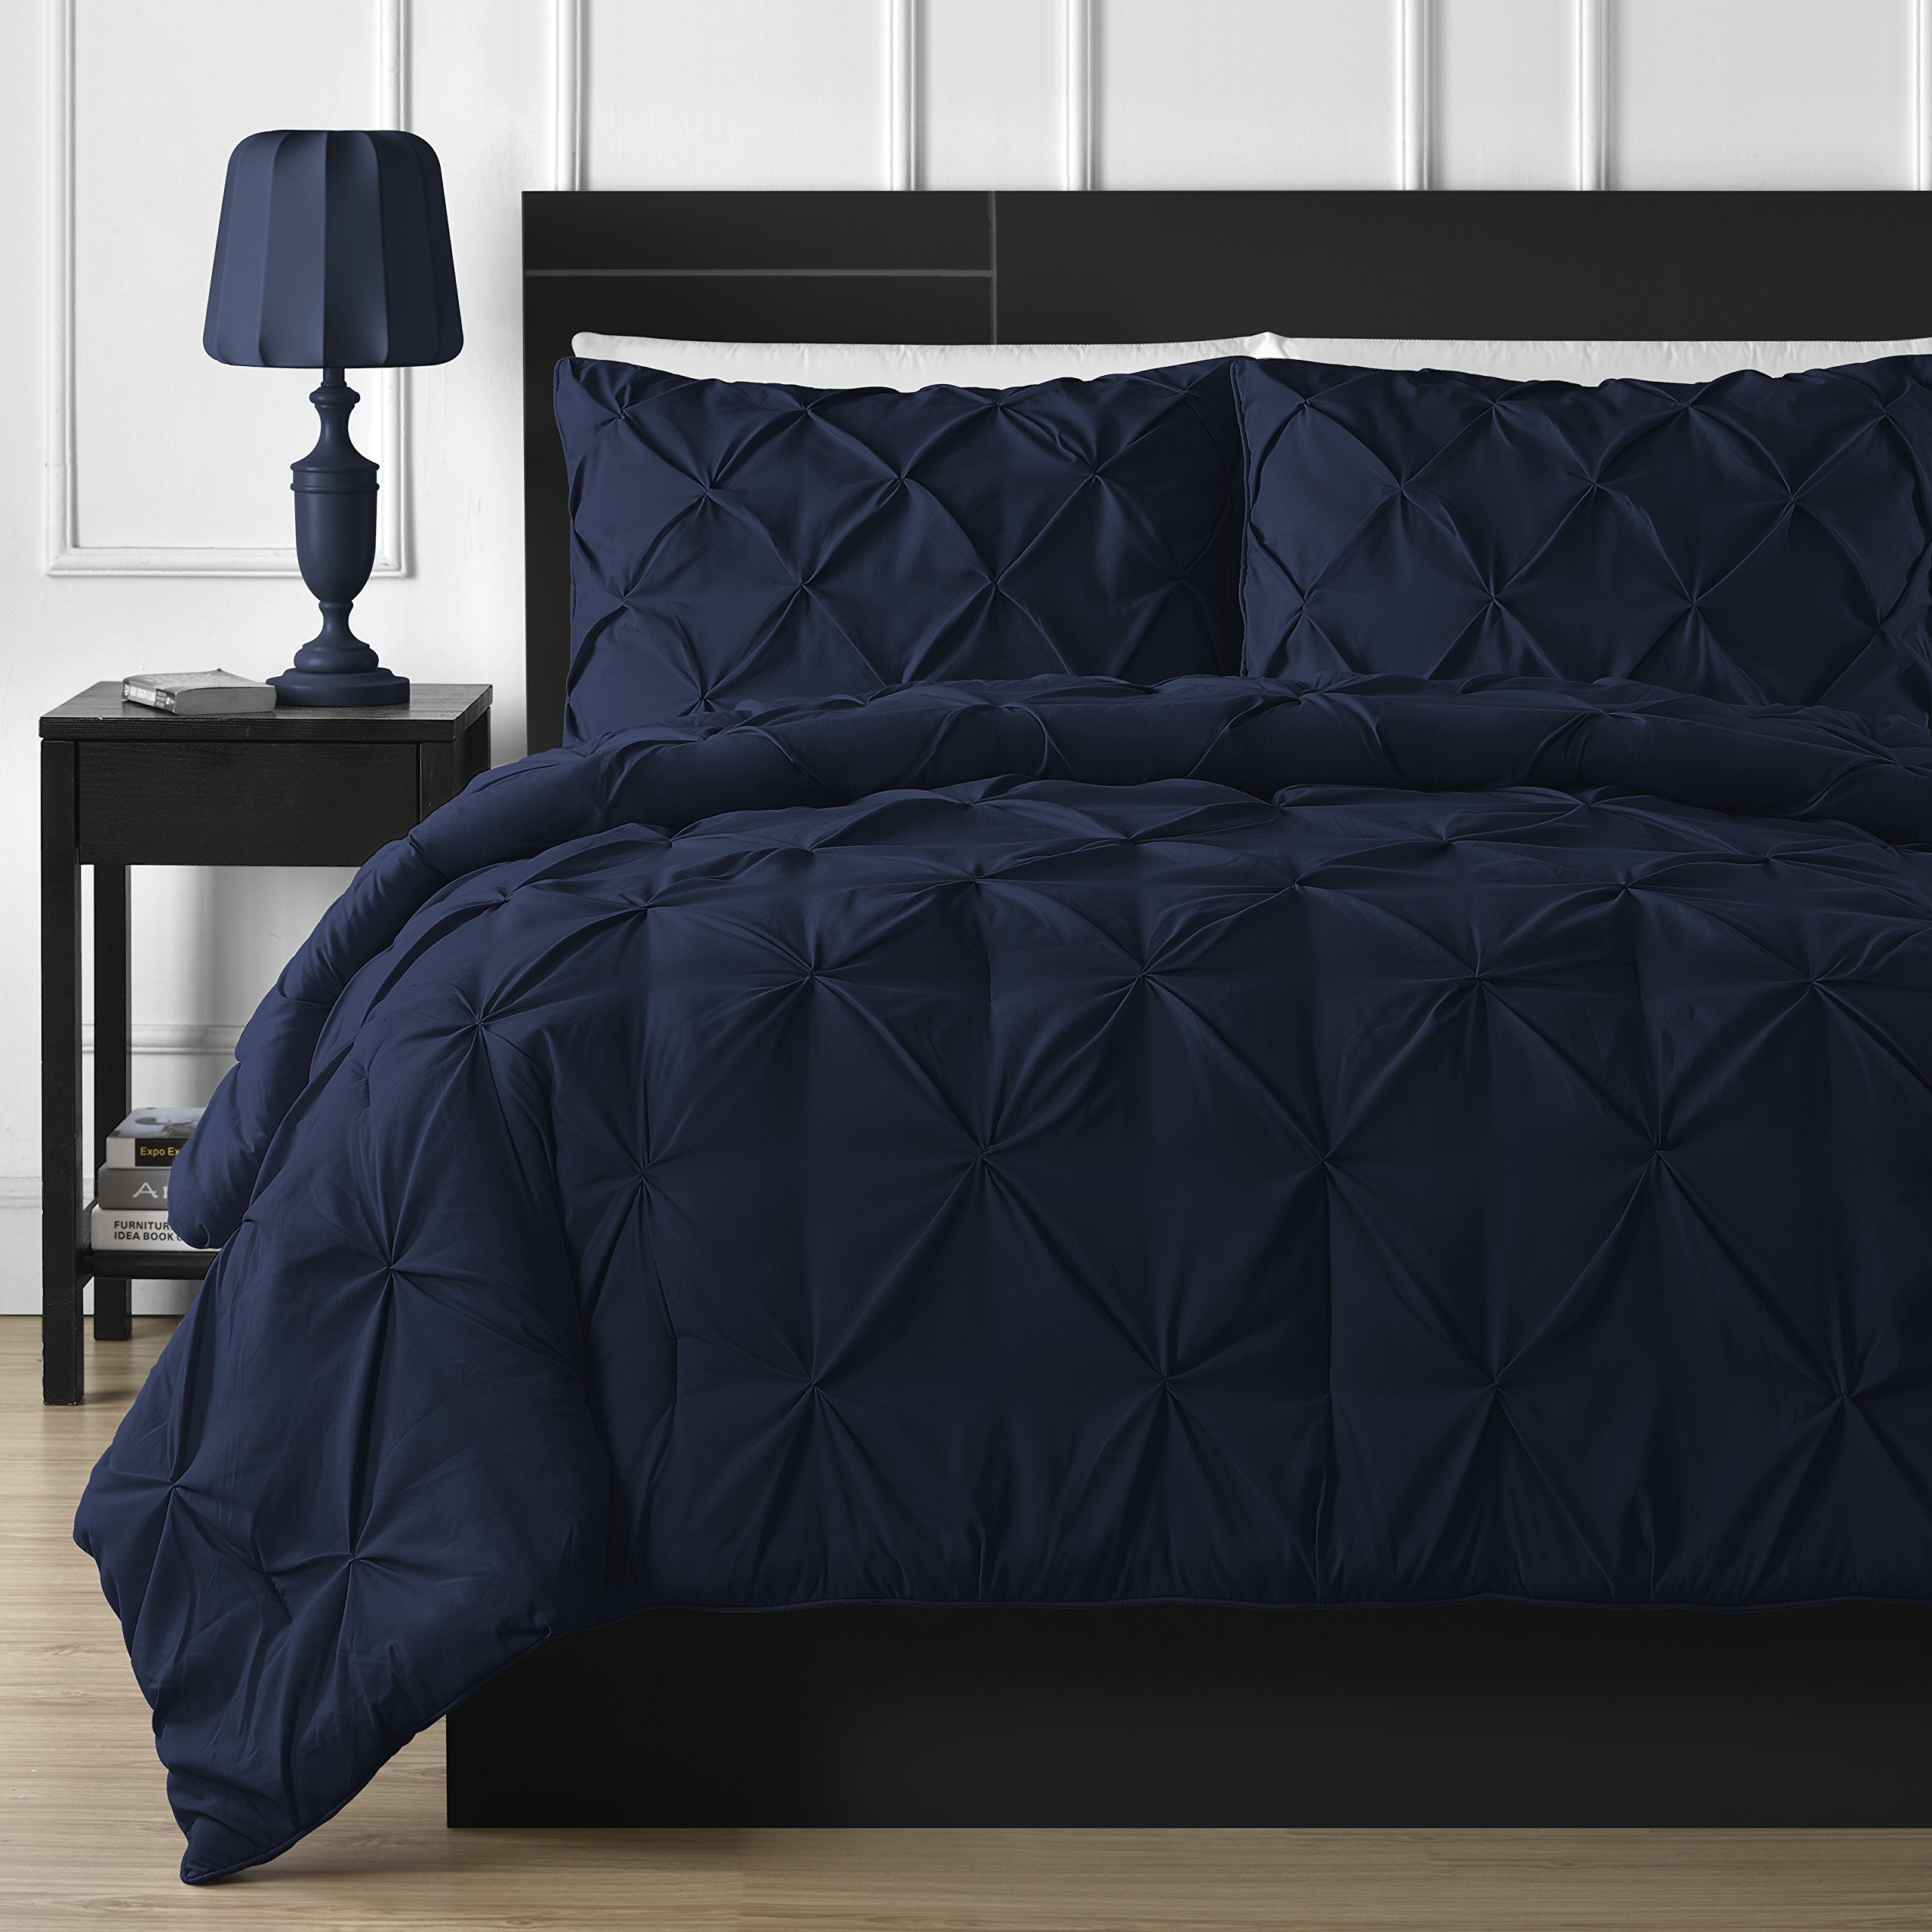 customer all in reviews white sets comforters best set helpful quilted insert rated pcr equinox stone goose duvet alternative season comforter bedding cottage down